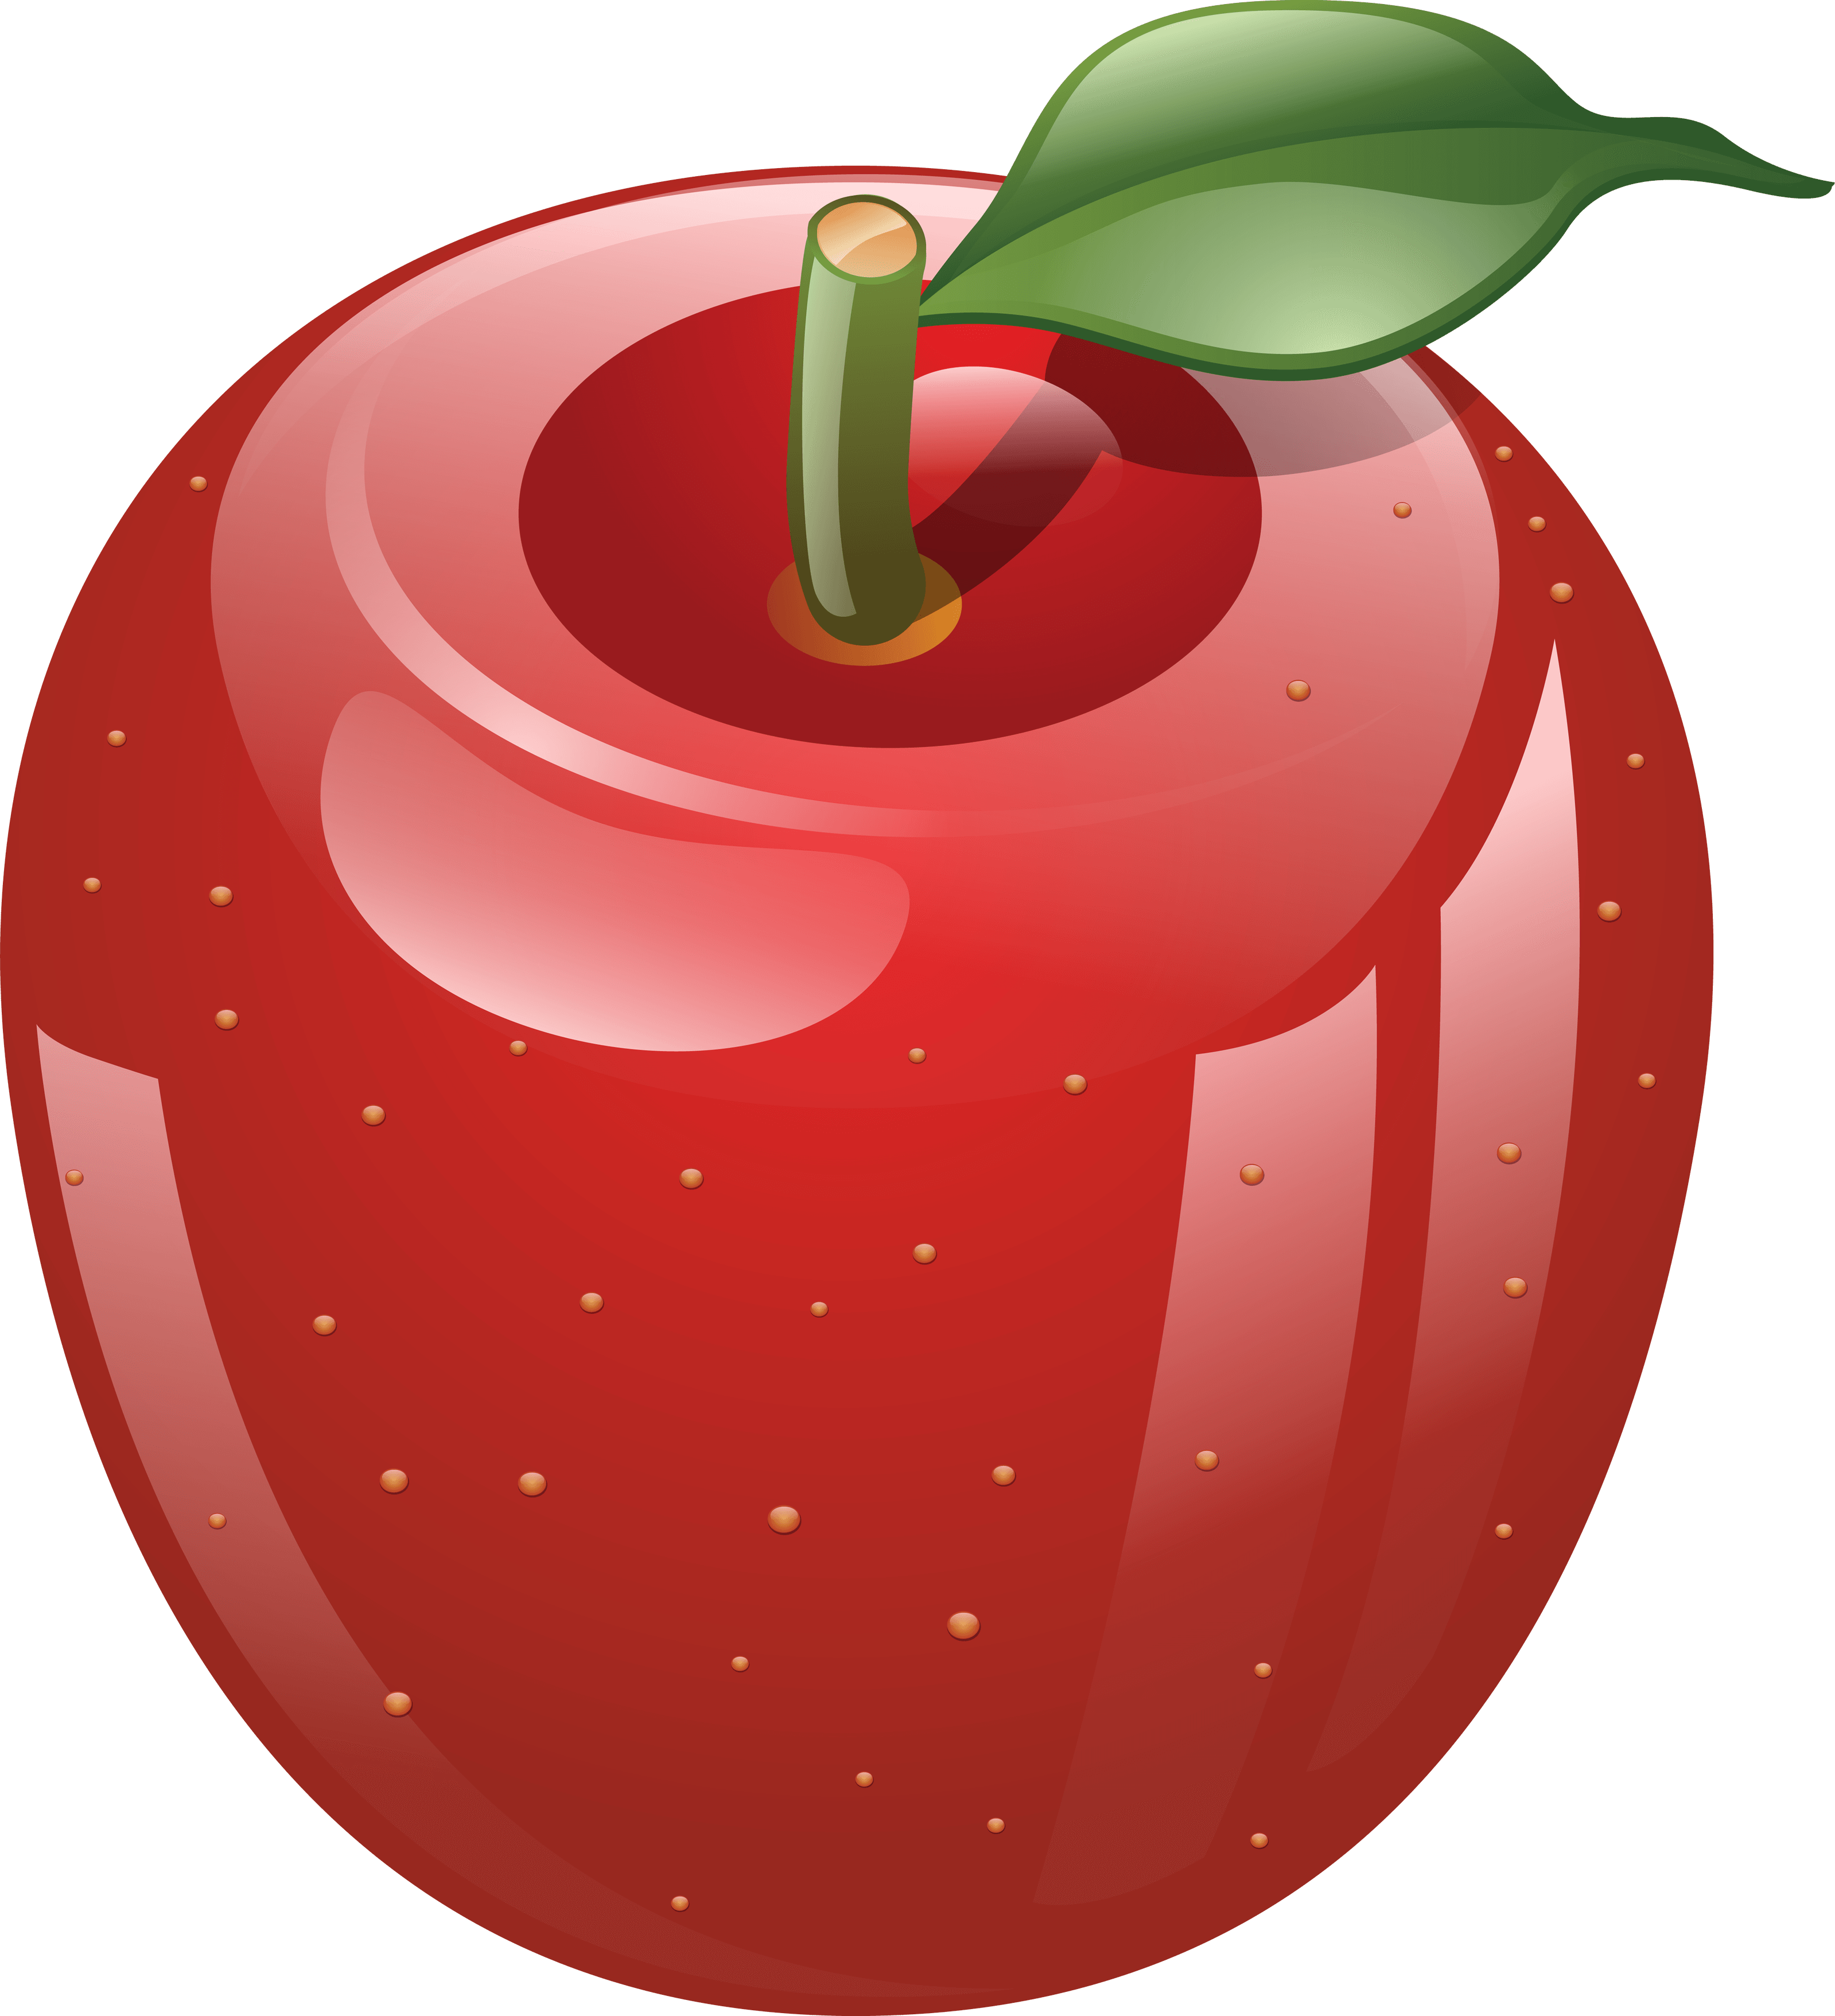 Man with apple clipart freeuse 66 Red Apple Png Image freeuse